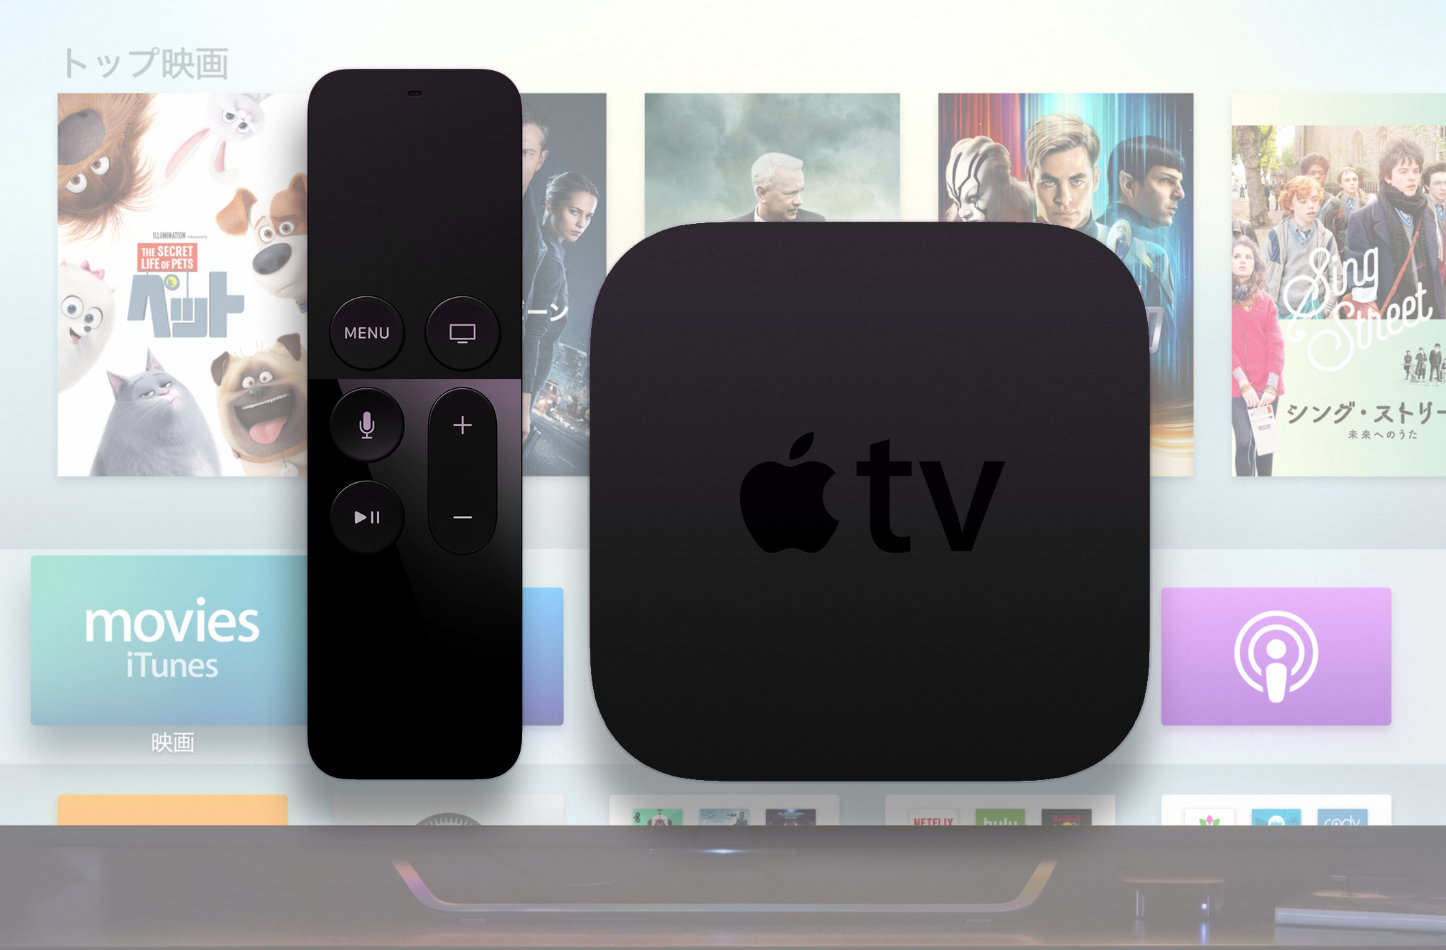 Apple-TV-Image-2.jpg